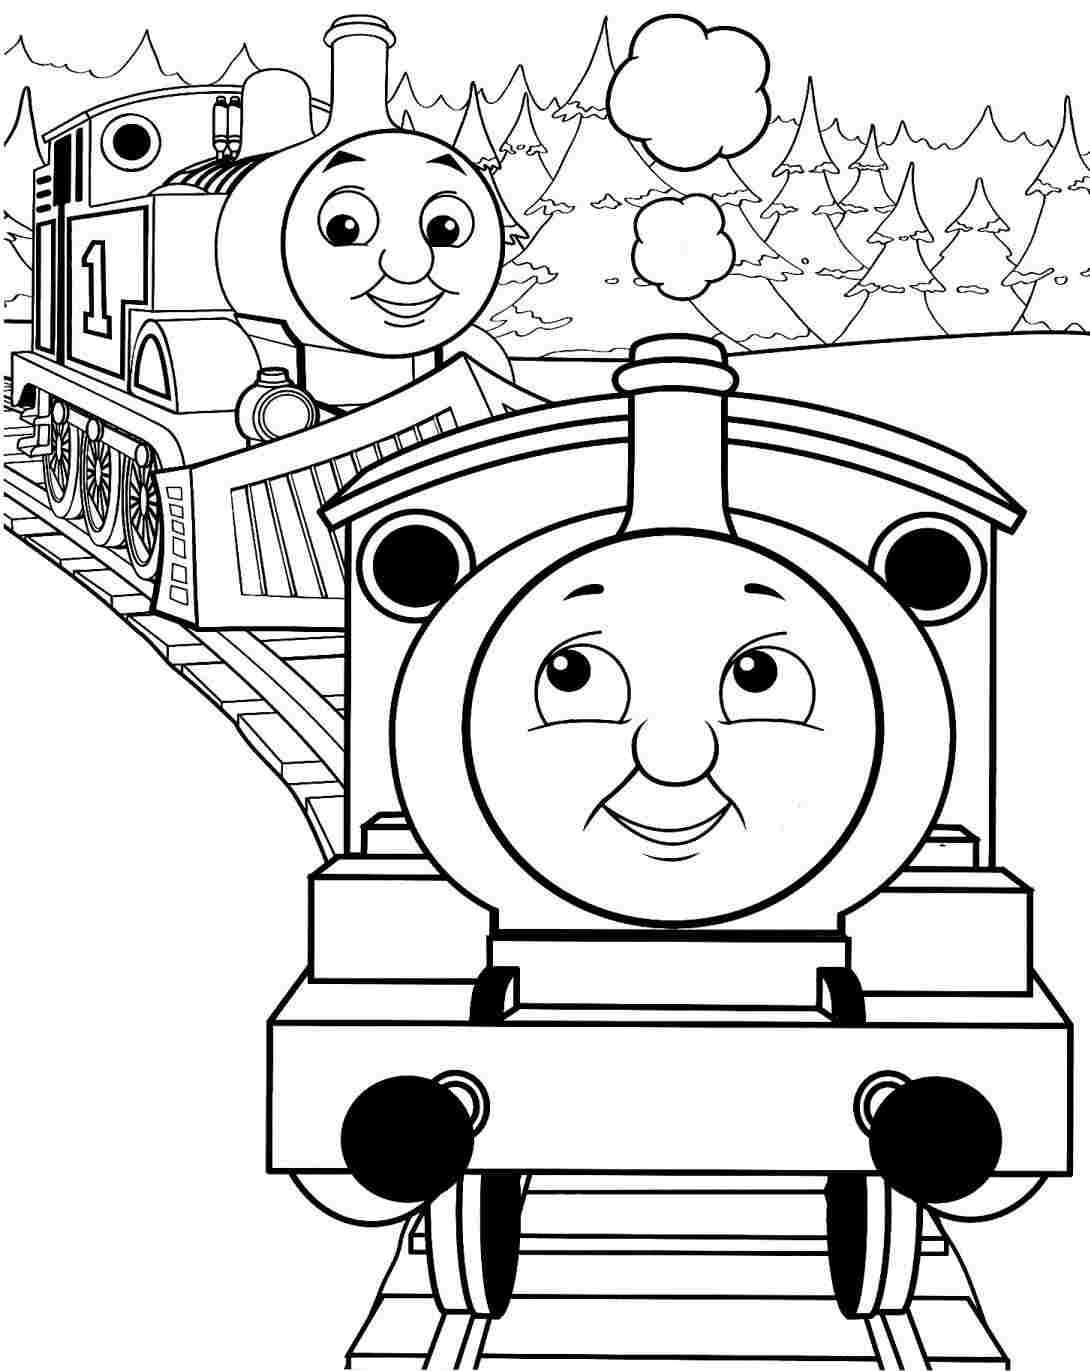 simple thomas the train coloring pages thomas the train coloring